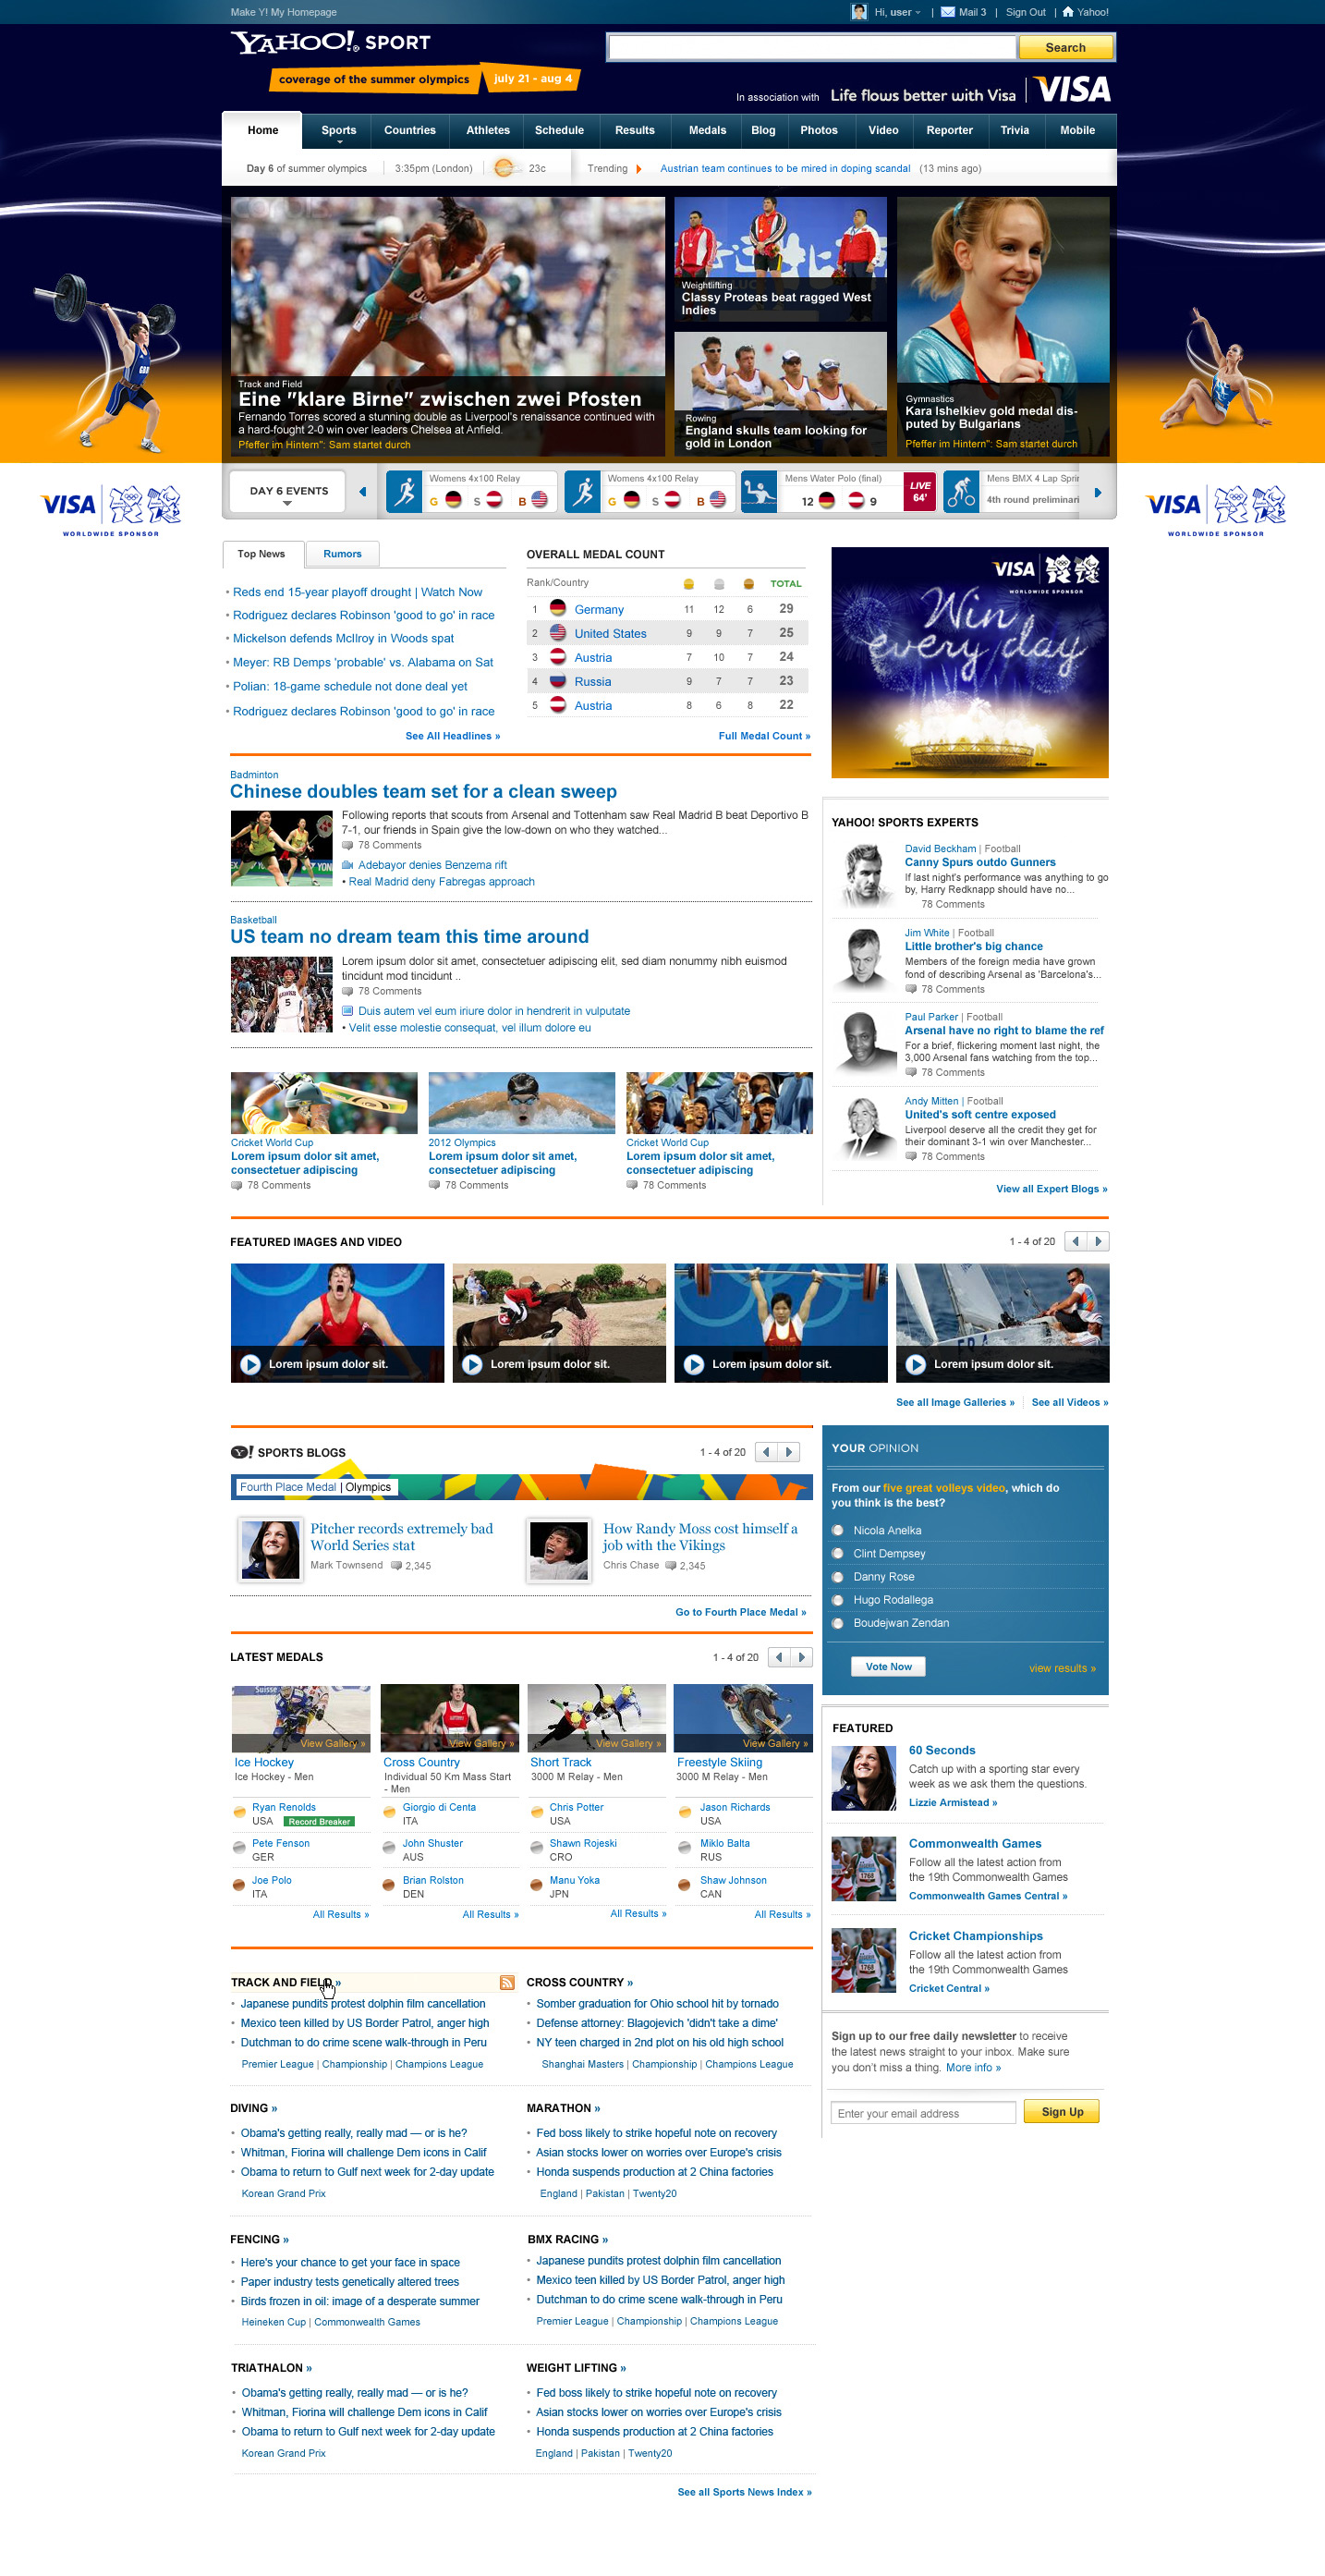 Visa Olympics - Website design in Farnborough, Hampshire